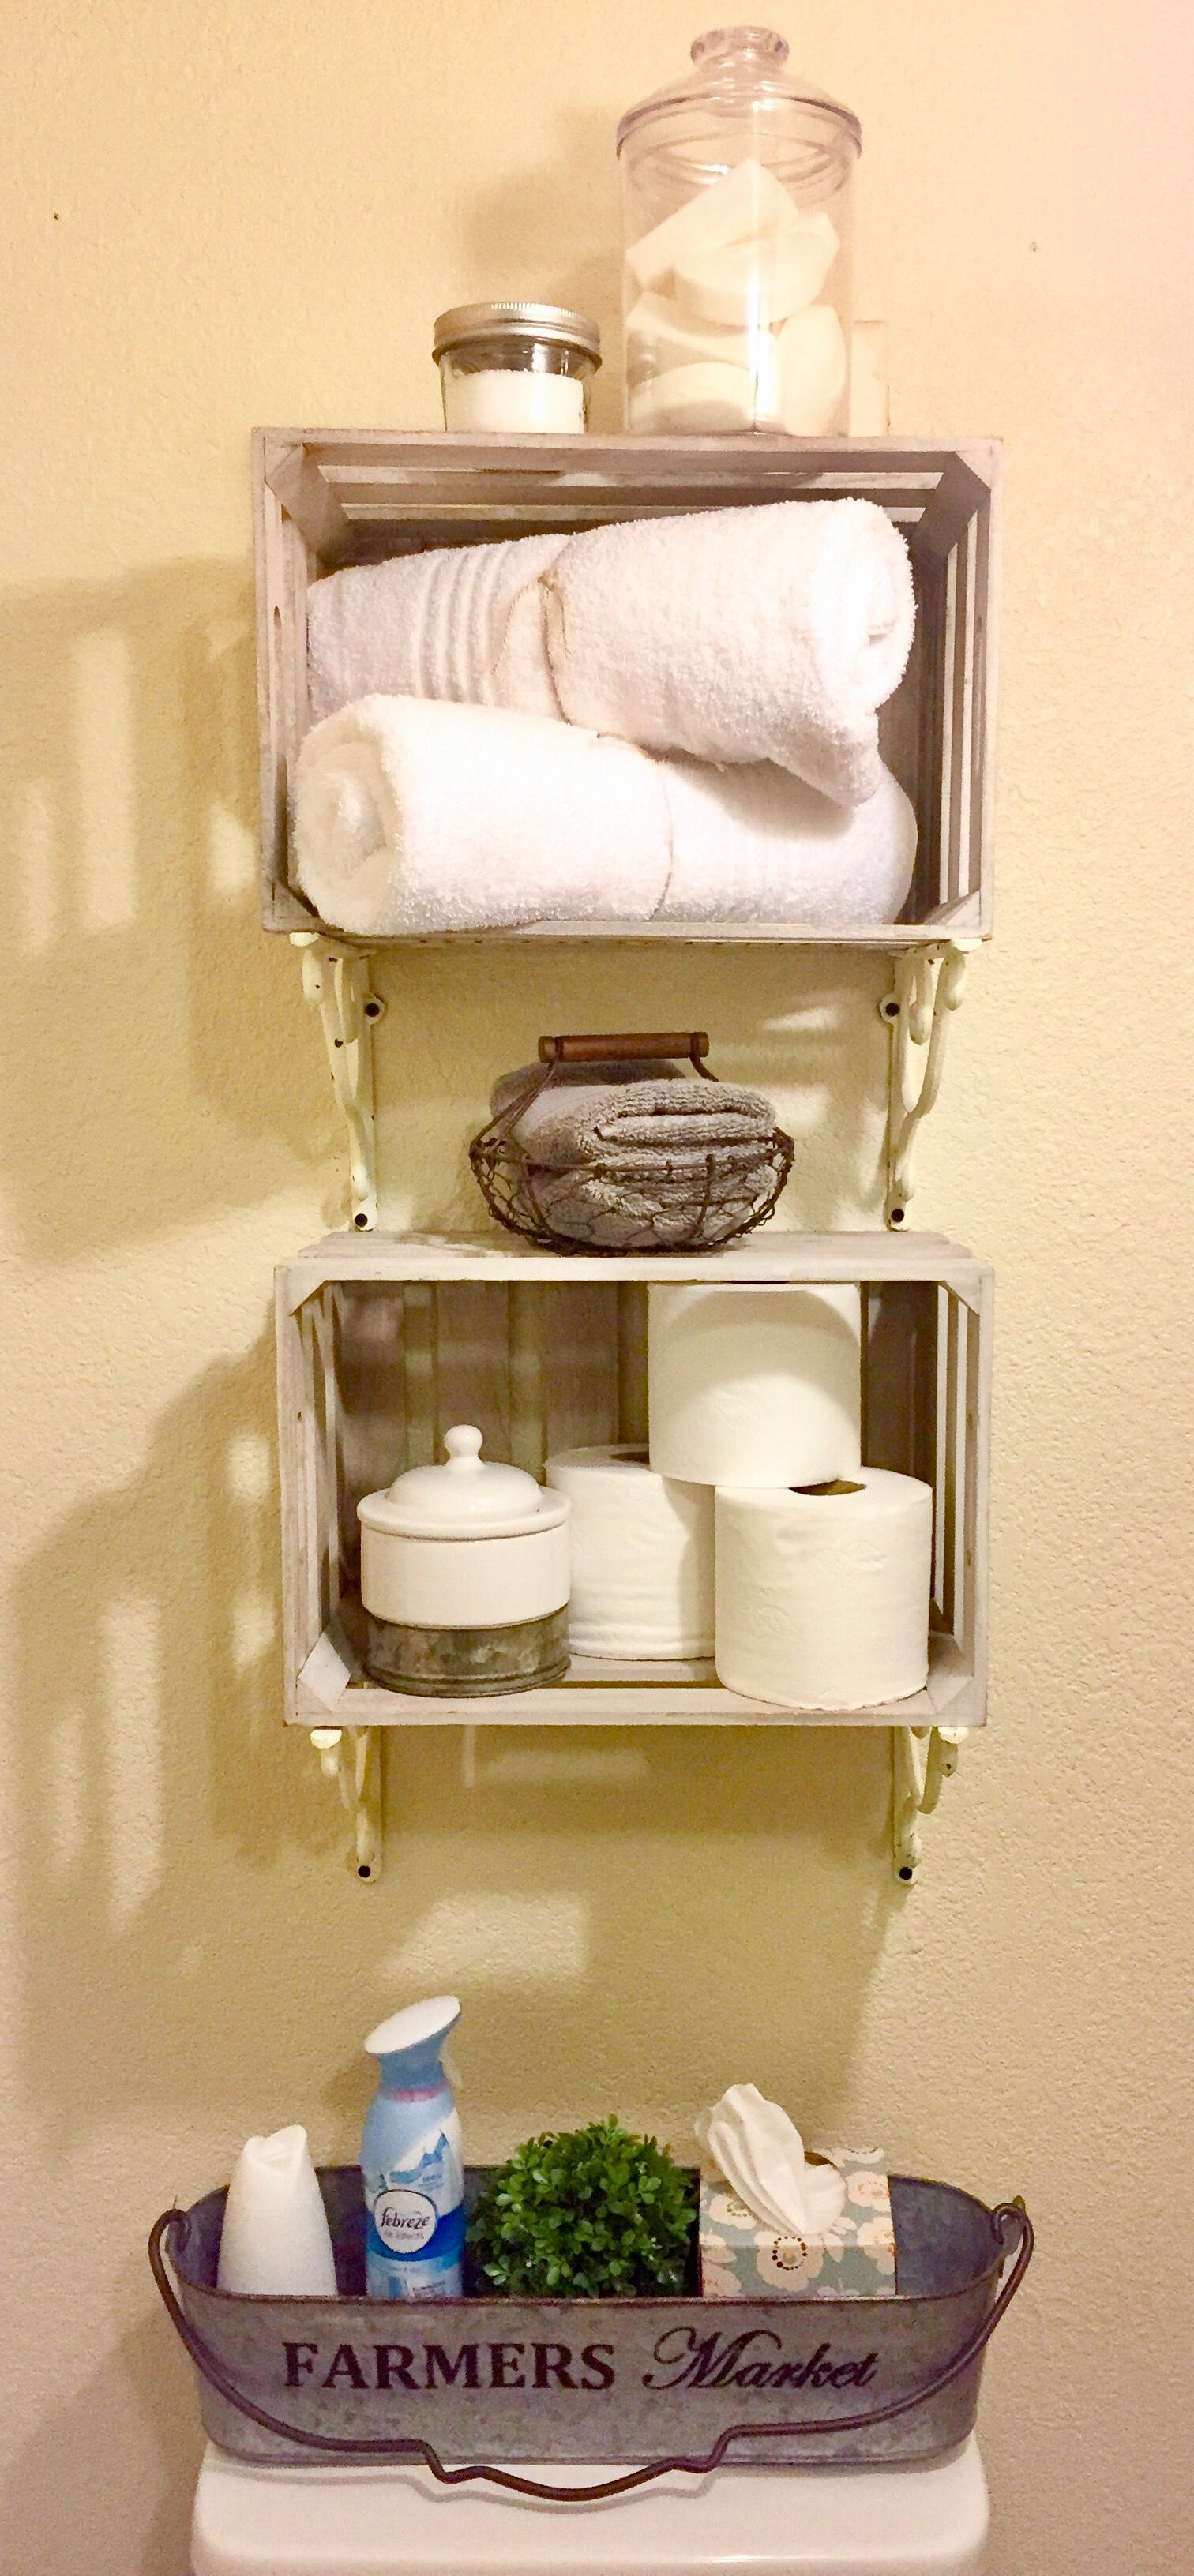 French Country Farmhouse Bathroom Storage Shelves Decor Country Bathroom Decor French Country Decorating Bathroom Farmhouse Bathroom Decor